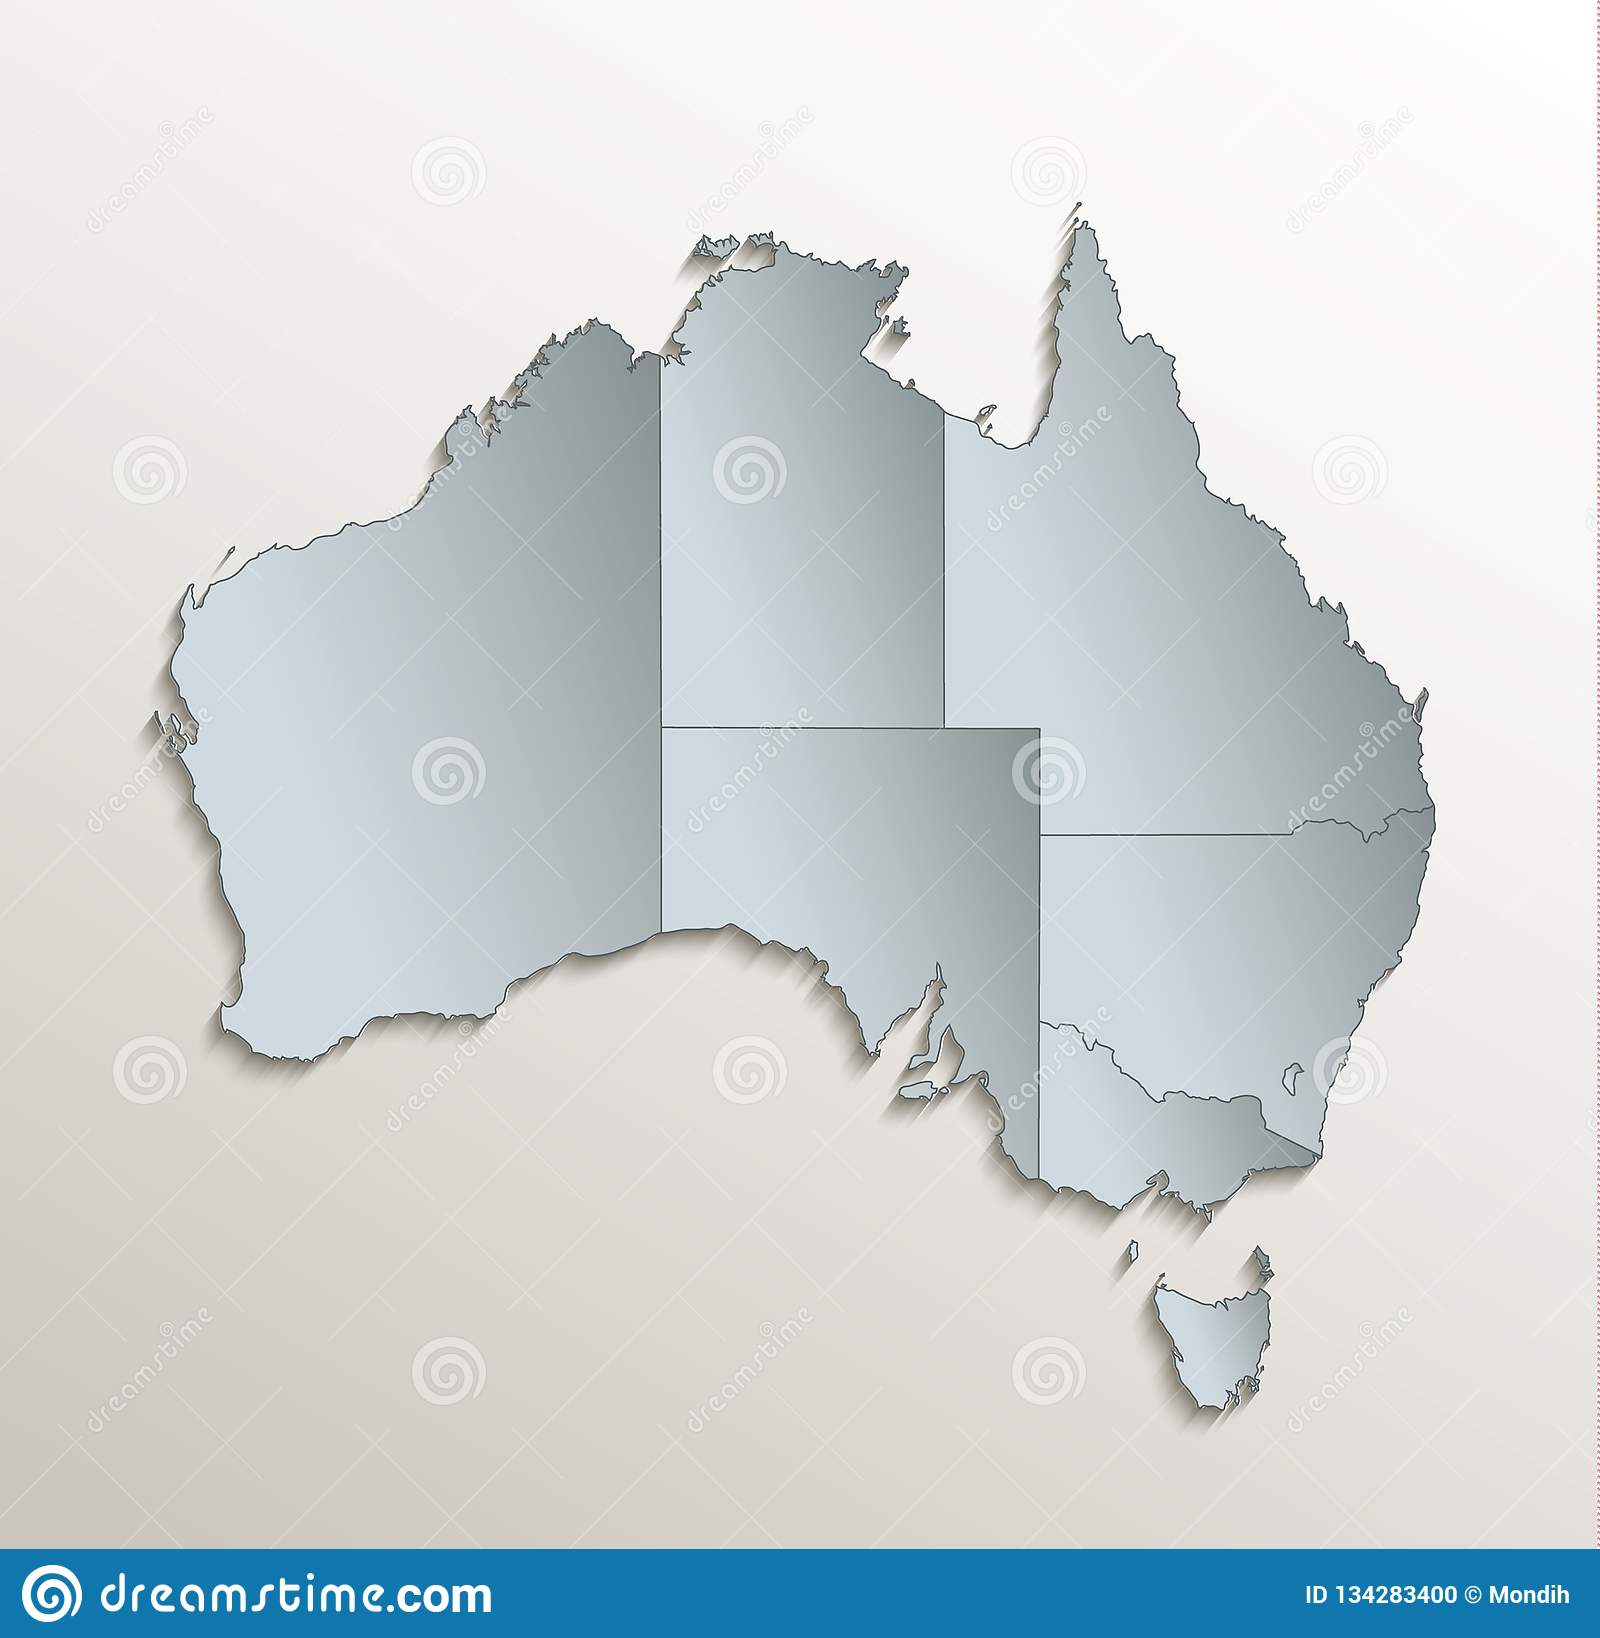 Australia Map Vector With States.Australia Map White Blue Separate Individual States Card Paper 3d